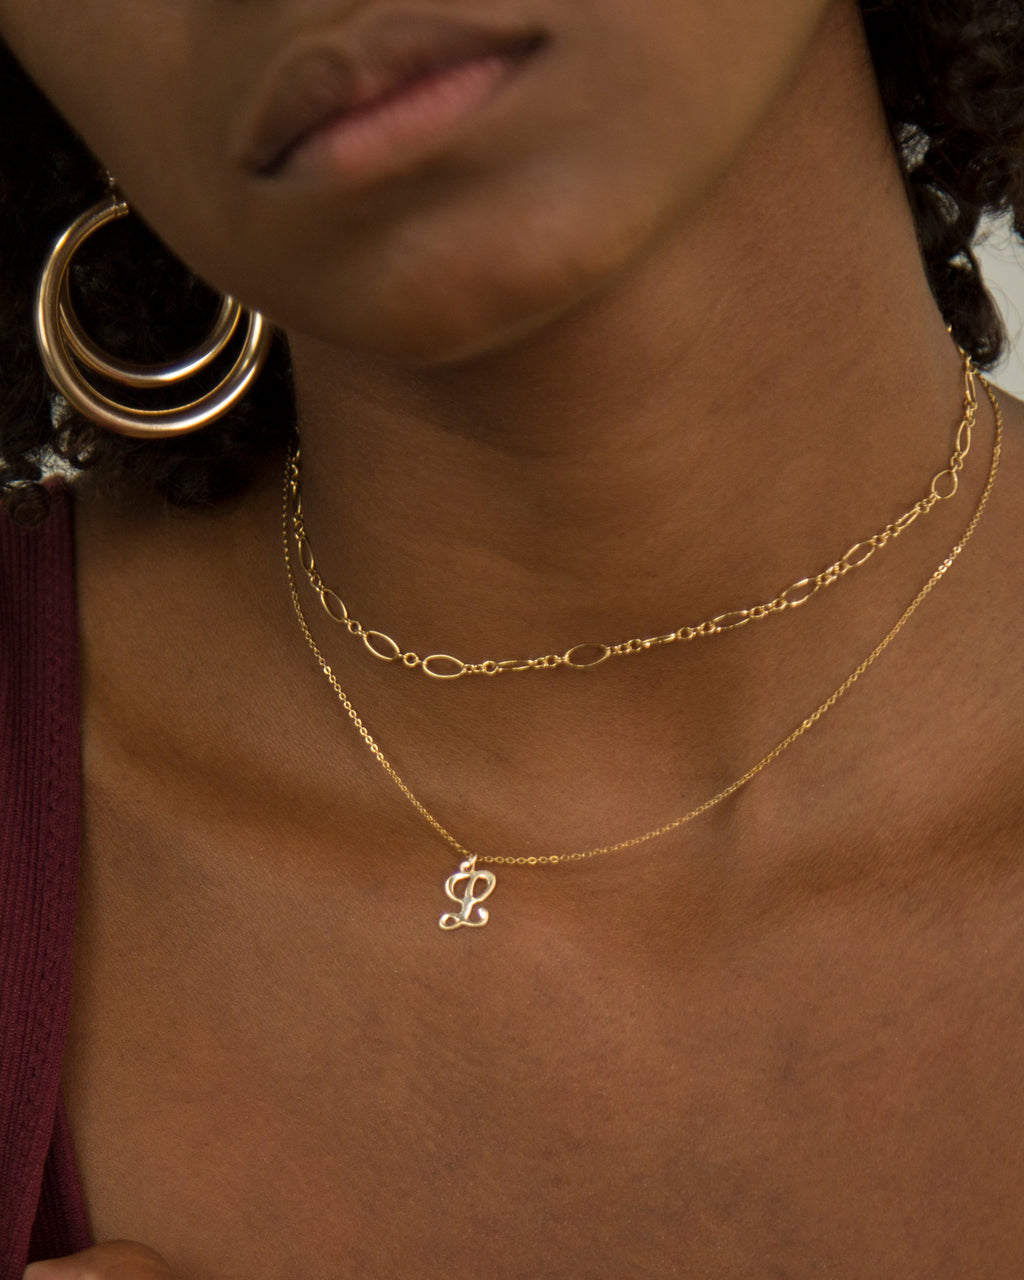 Cursive Initial Charm Necklace